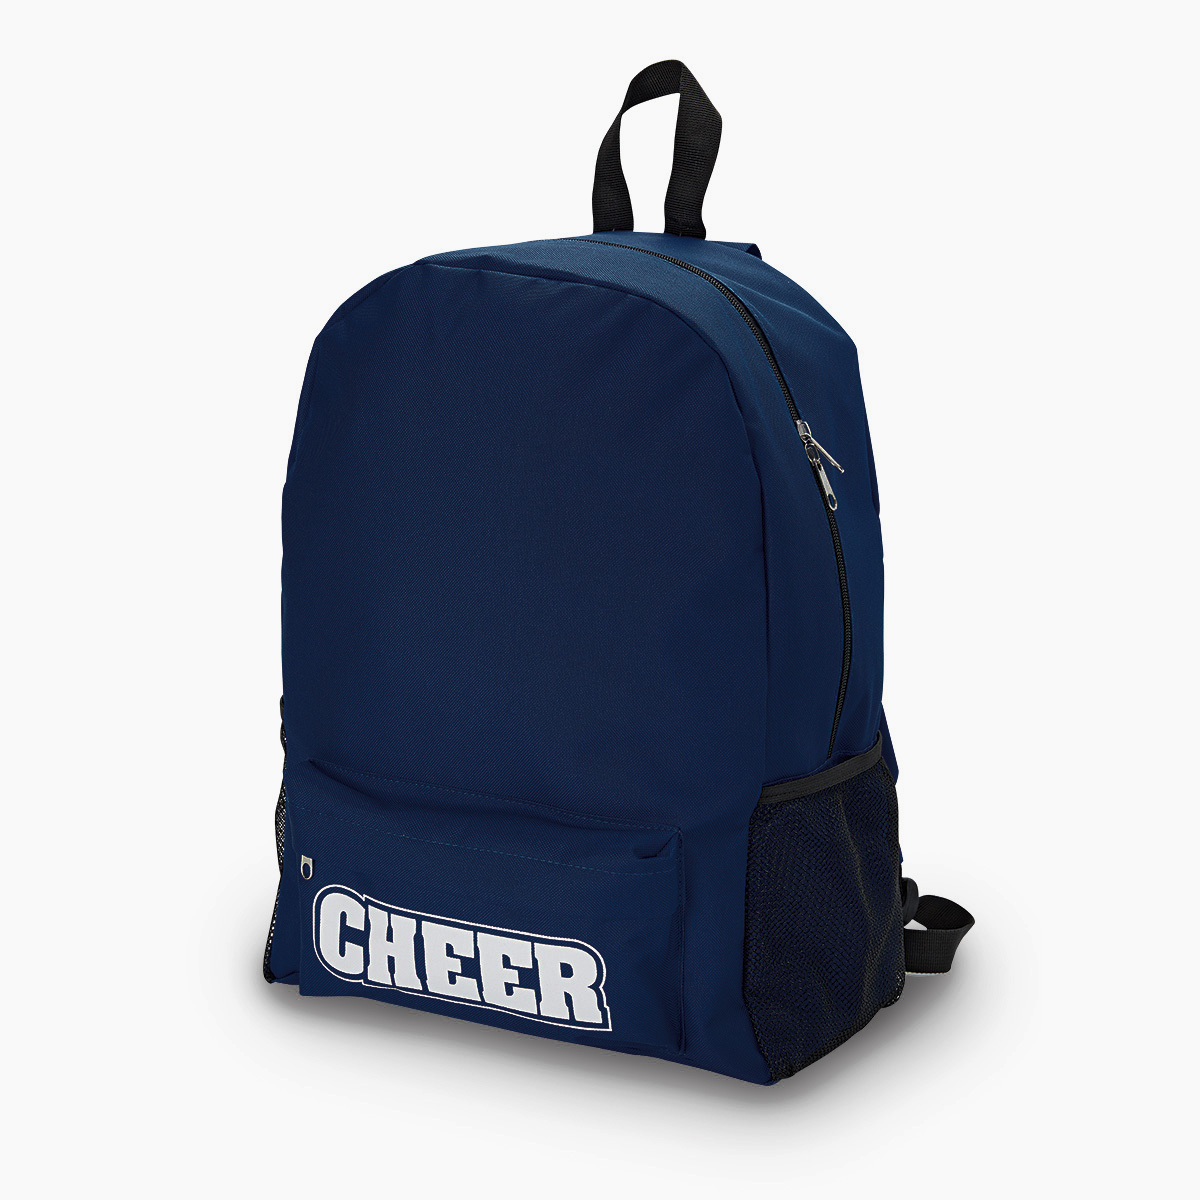 Spirit Backpack With Cheer Imprint